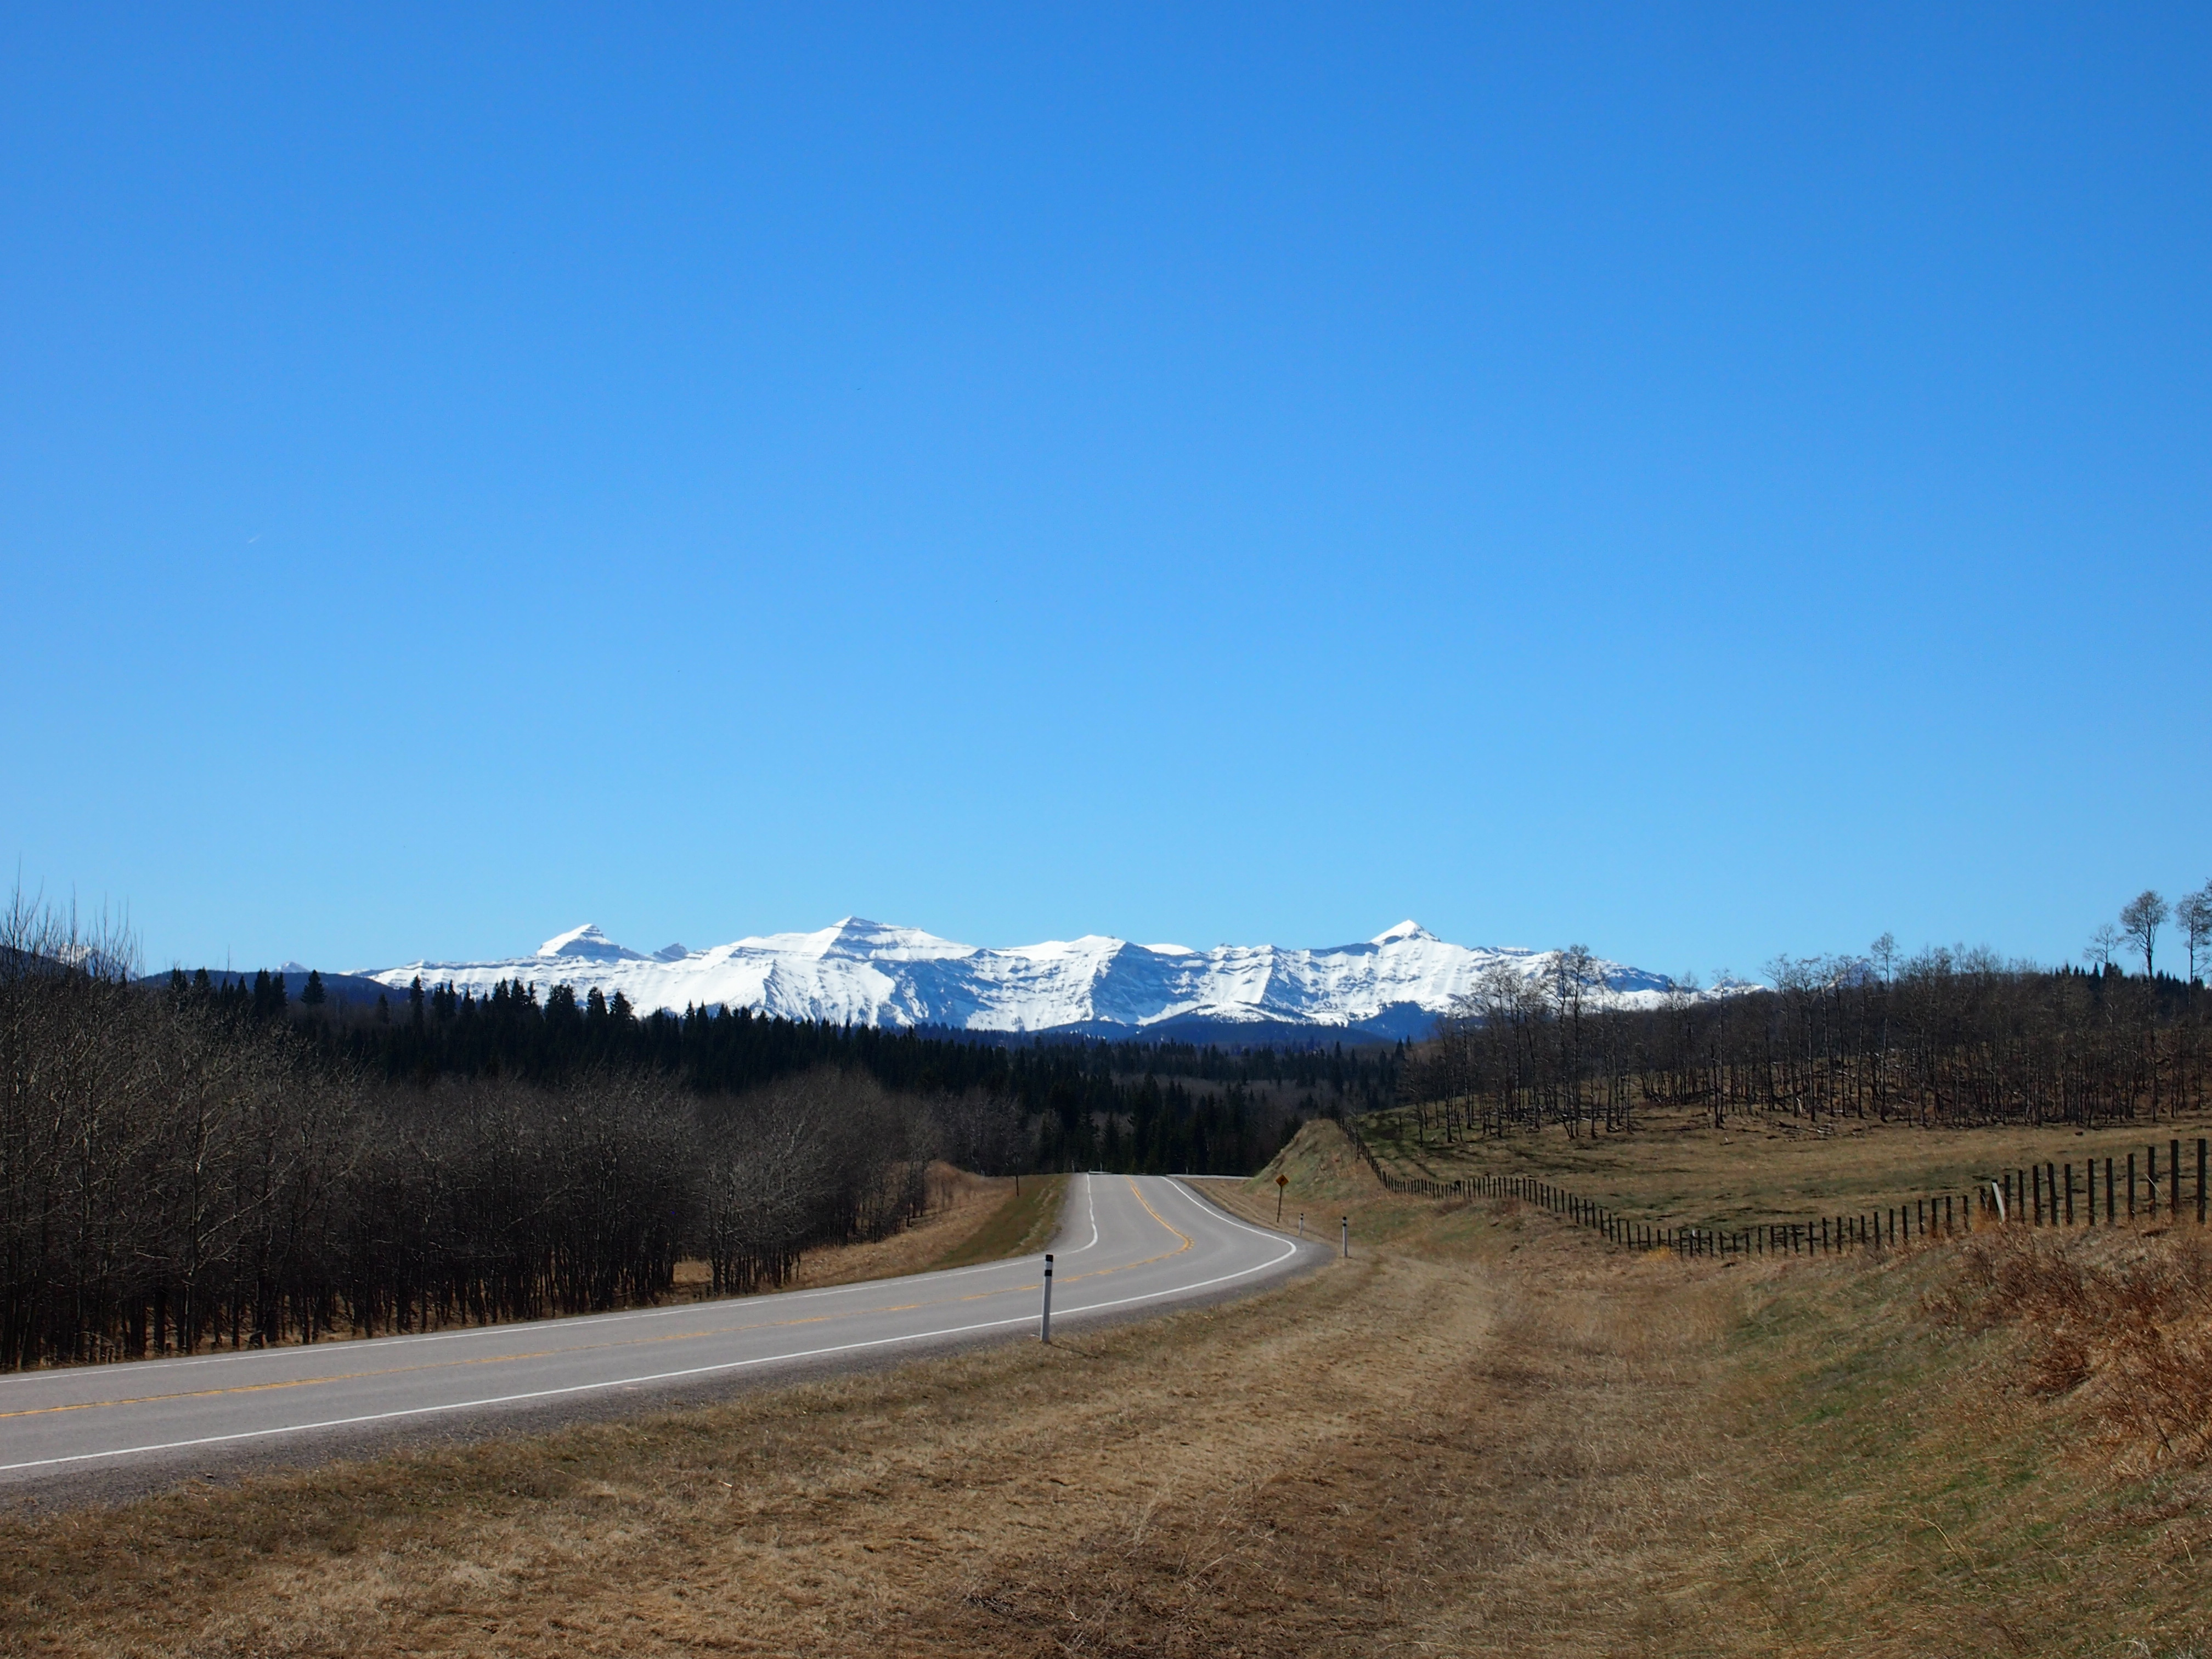 Road Trippin': Soaking in Turner Valley's Big Blue Sky!